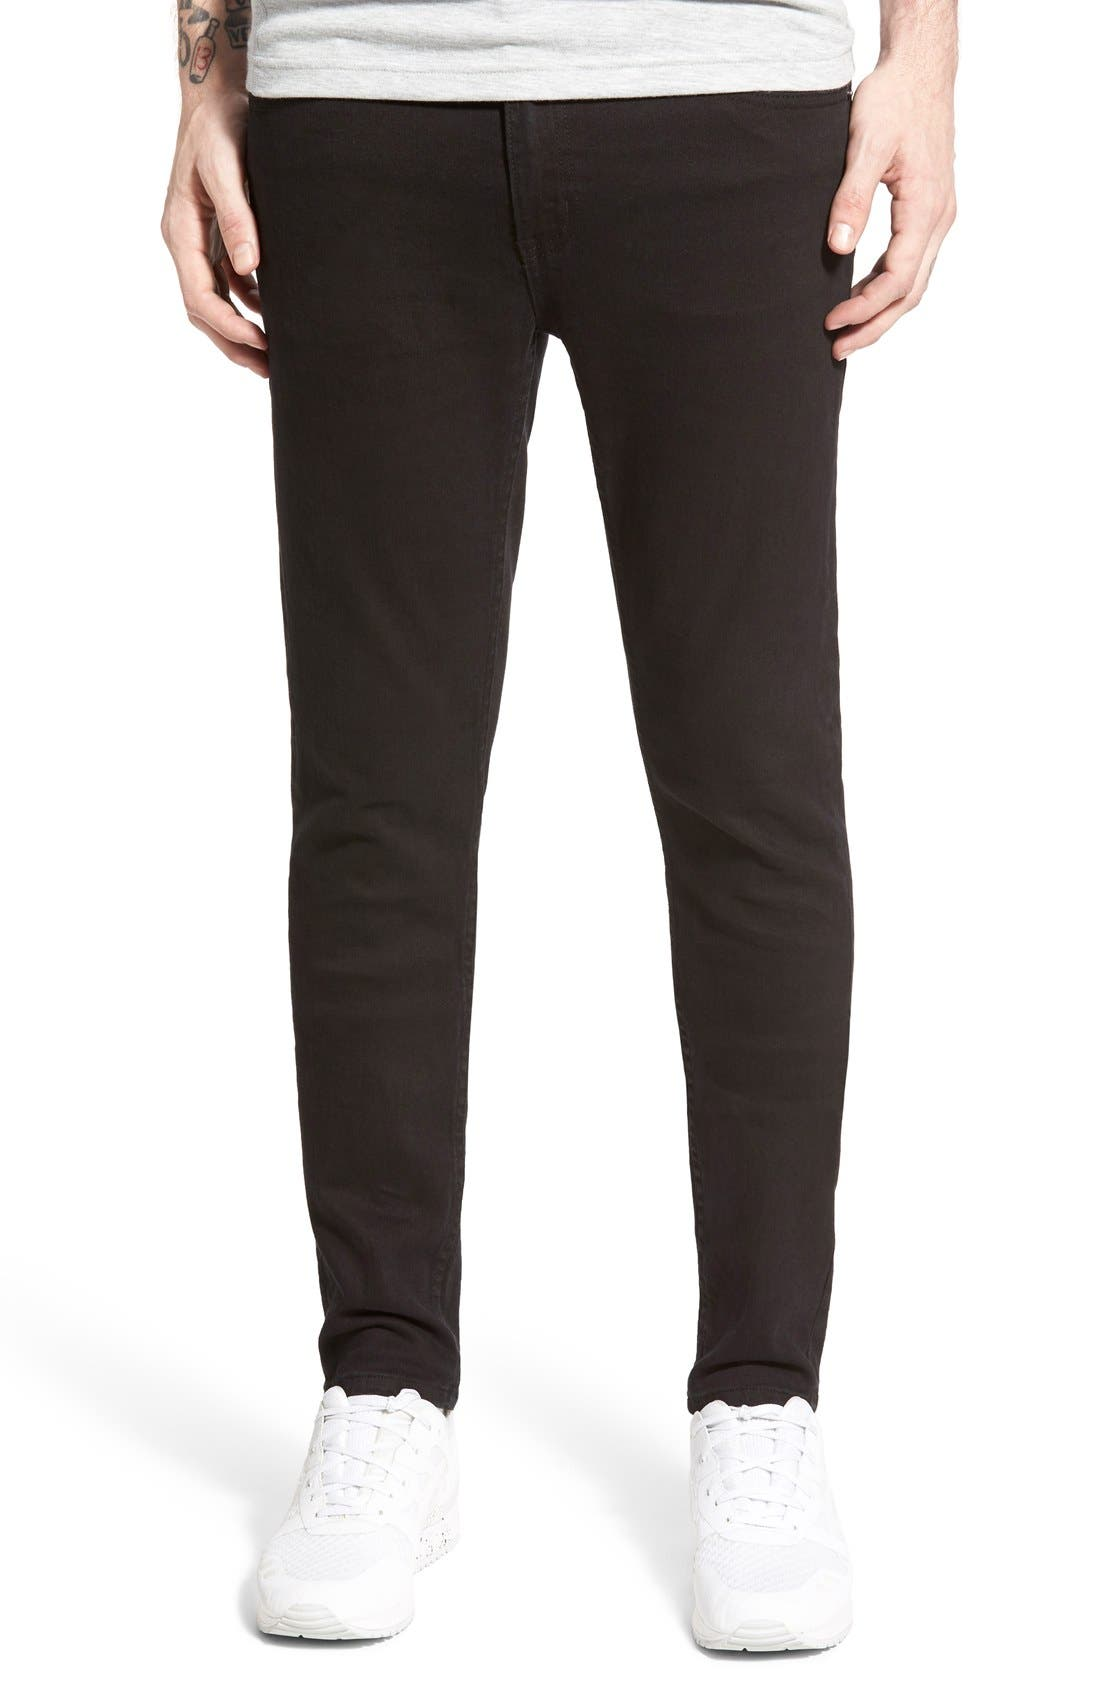 CHEAP MONDAY 'Tight' Skinny Fit Jeans